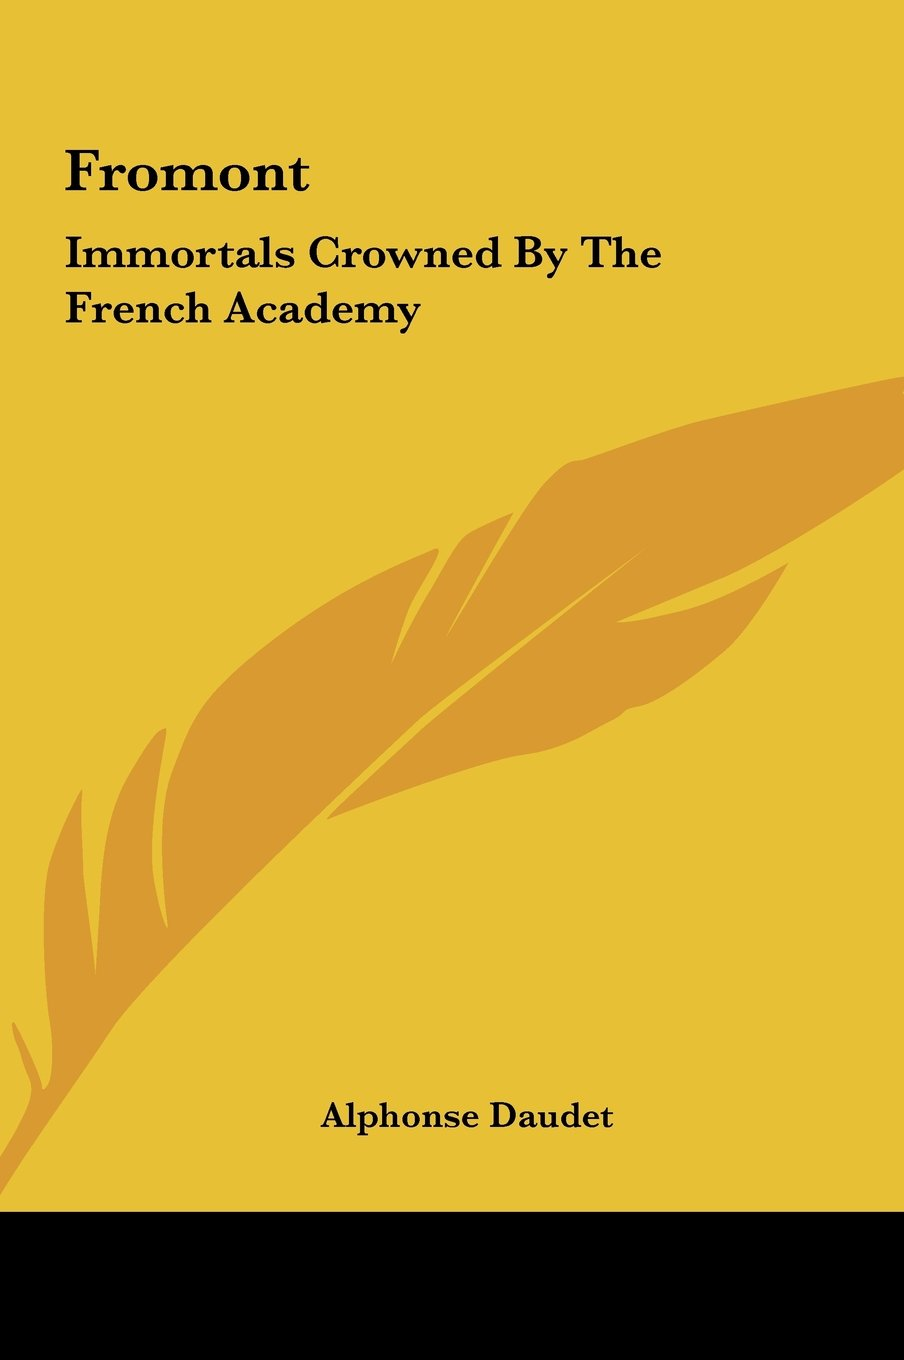 Fromont: Immortals Crowned By The French Academy ebook